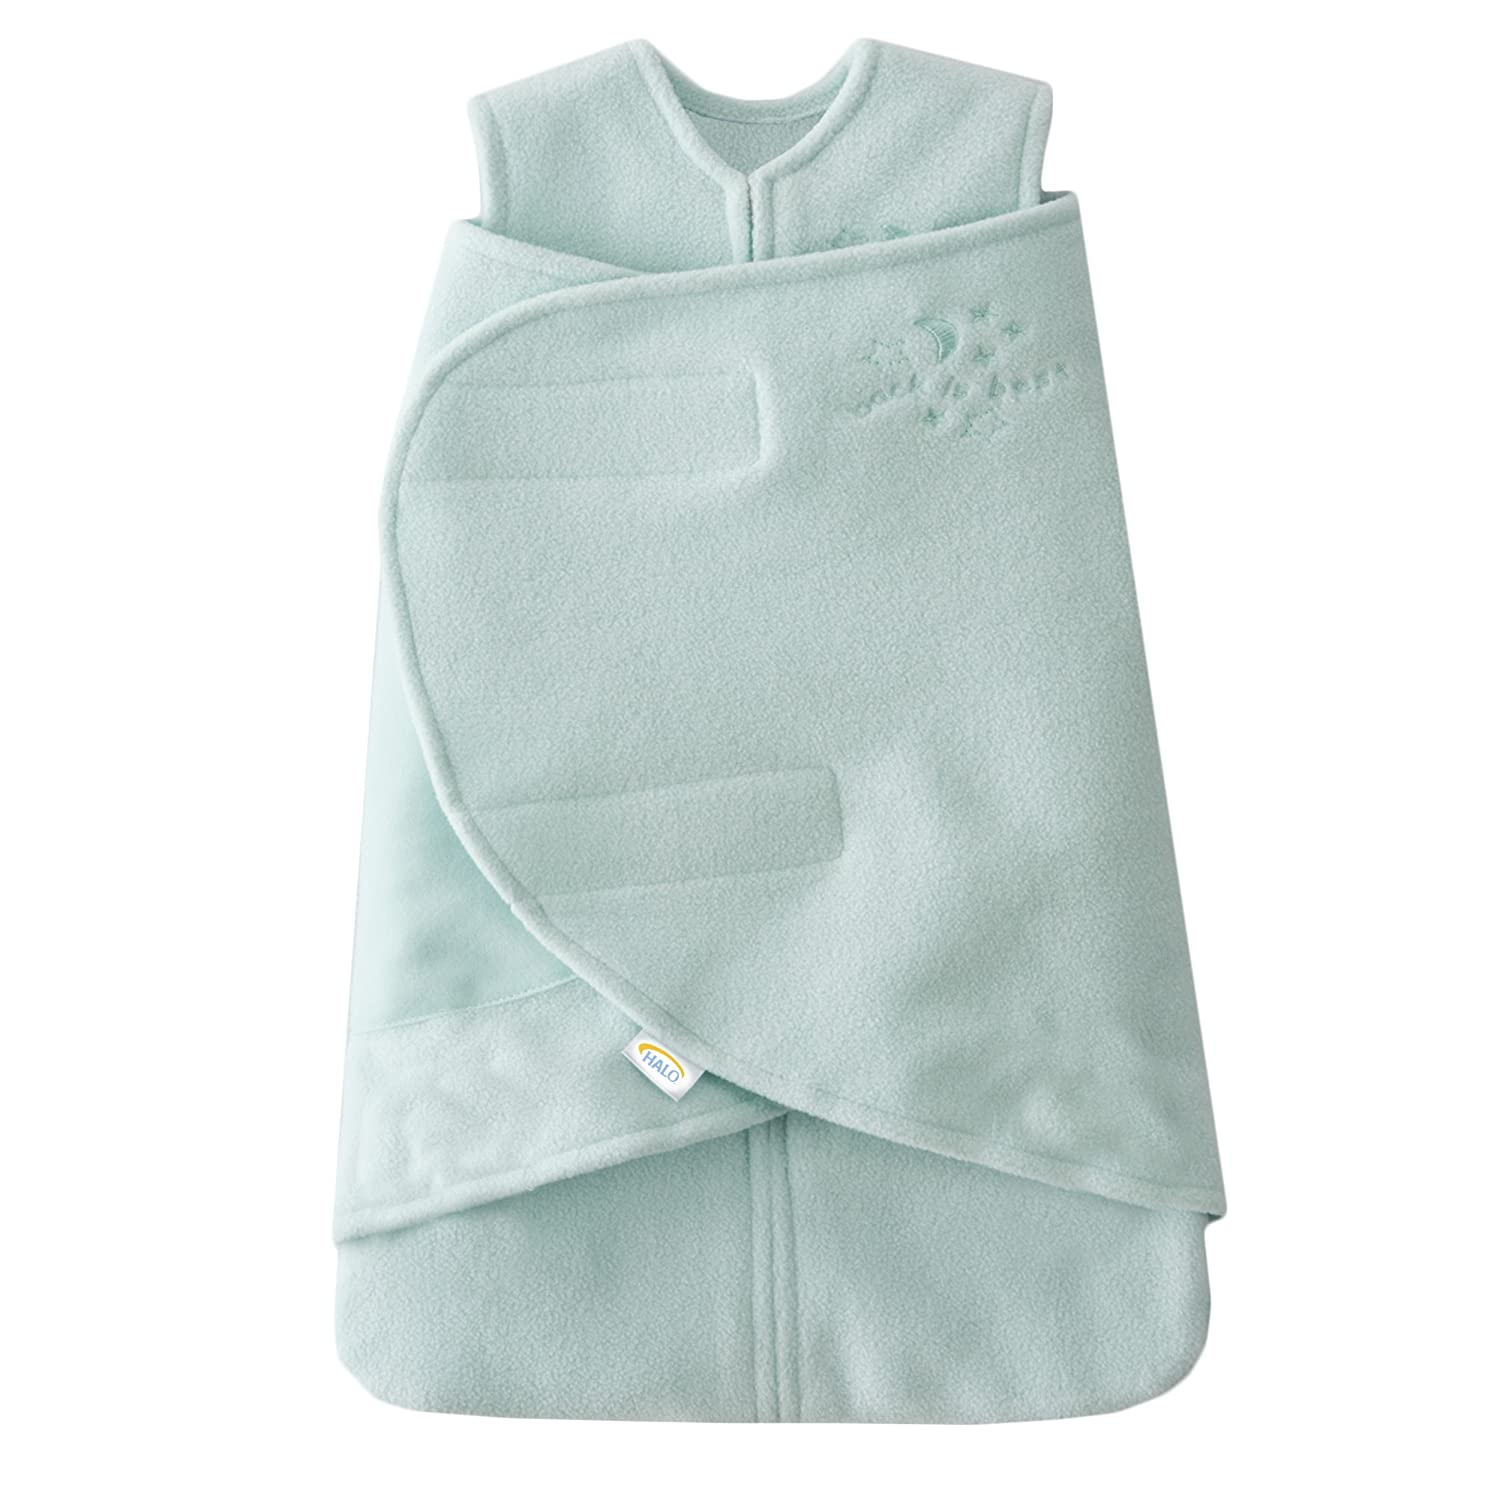 B000BTPTTW Halo Sleepsack Swaddle Micro Fleece - Mint - Preemie 811k1UaDHdL